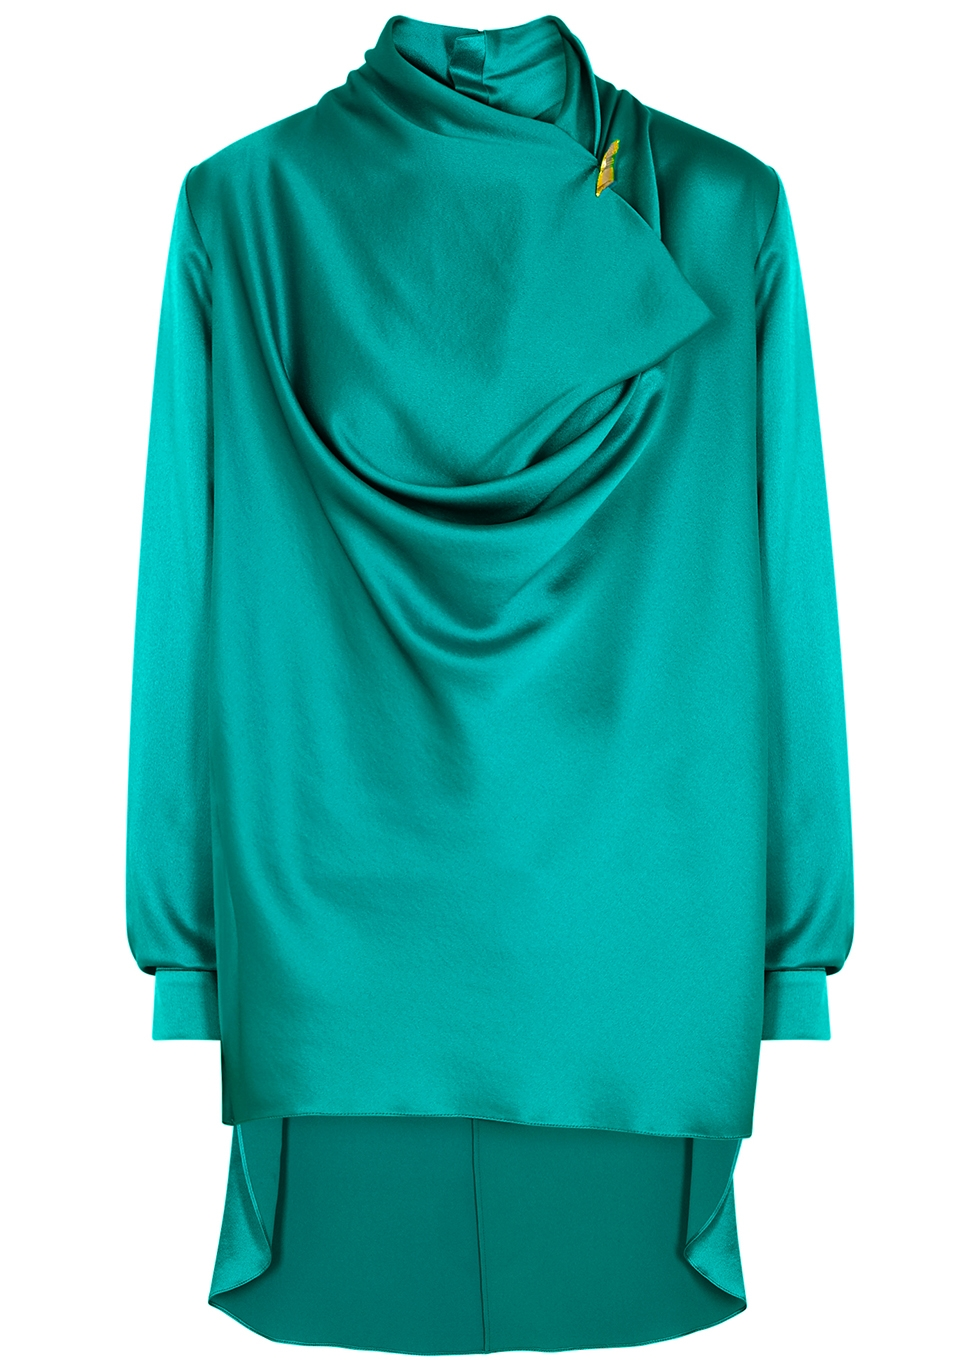 Limela teal draped silk blouse